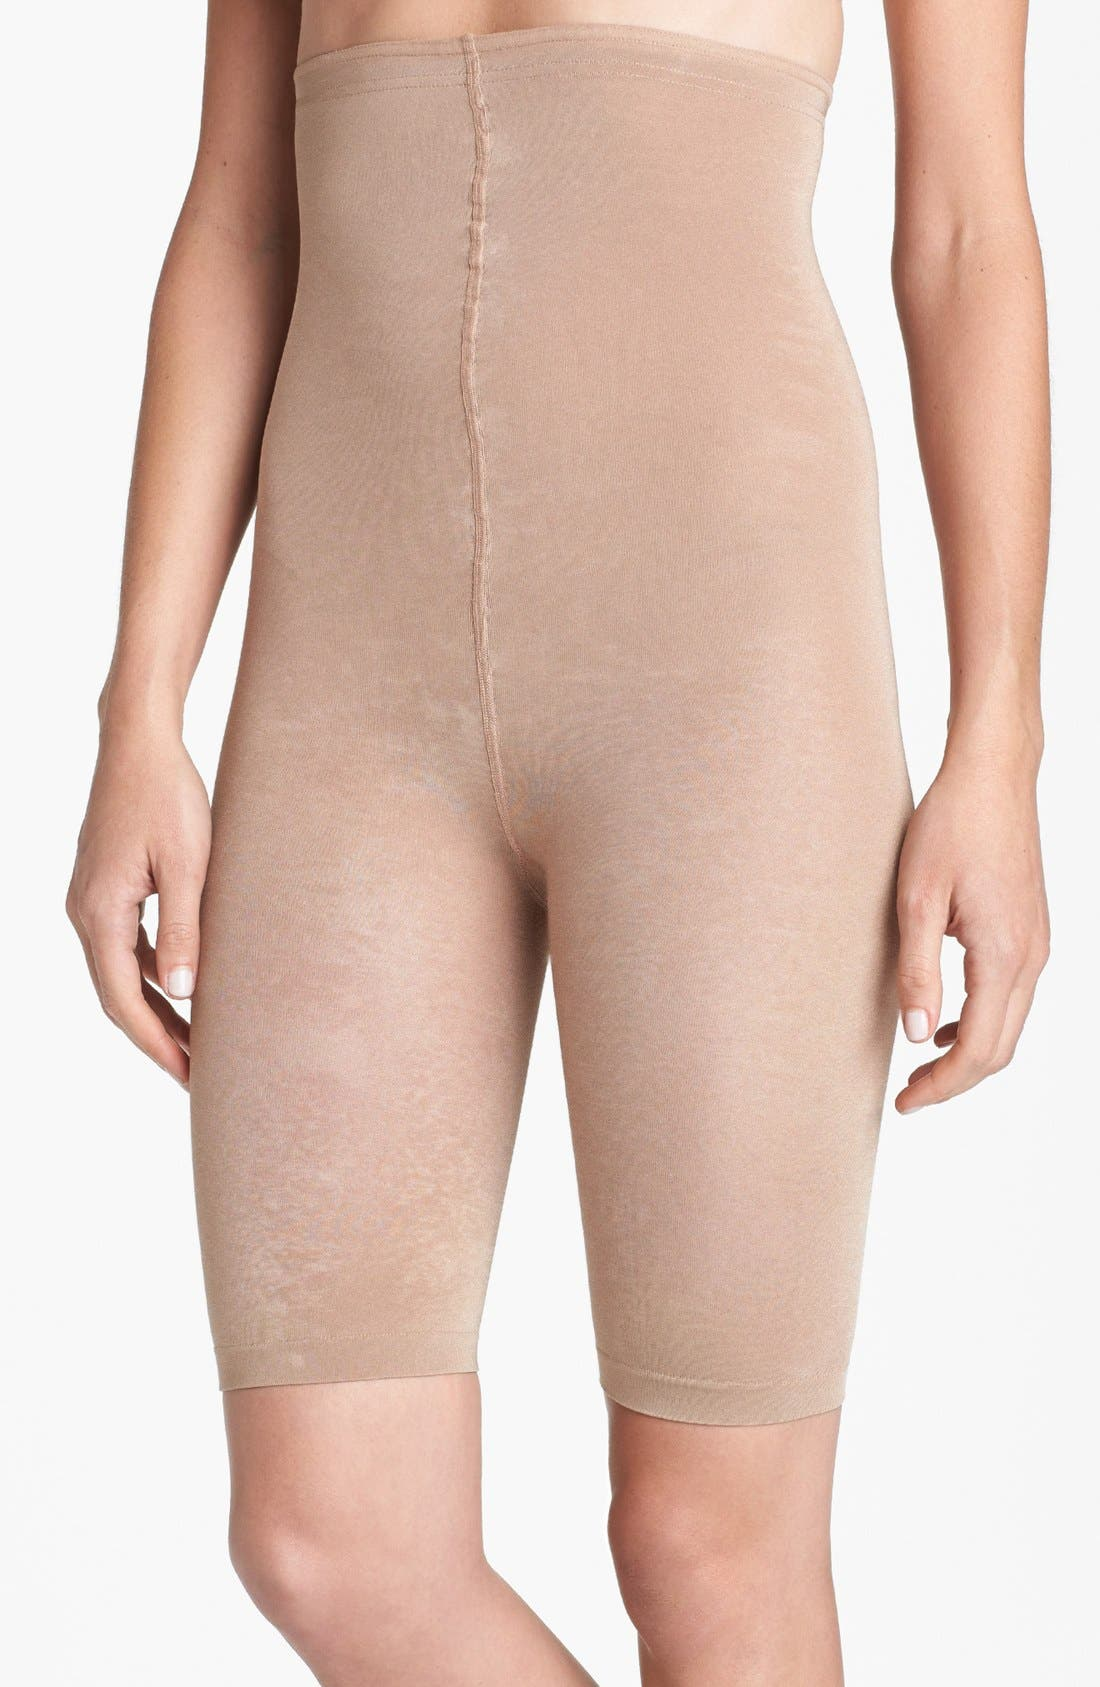 Main Image - Donna Karan 'The Body Perfect' High Waist Mid Thigh Shaper